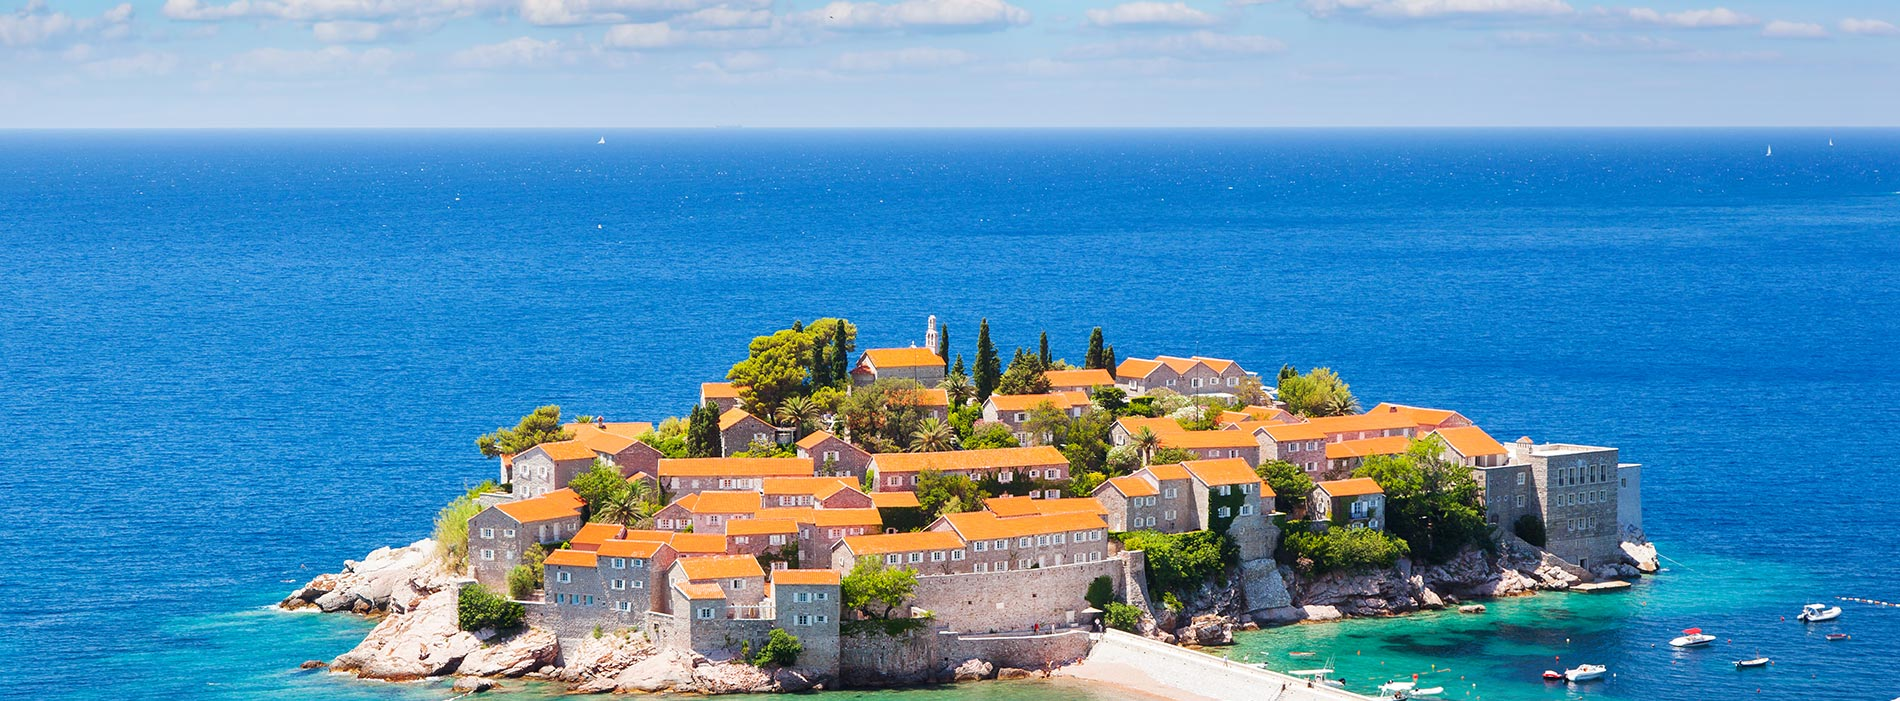 Sveti Stefan, small islet and resort in Montenegro.jpg